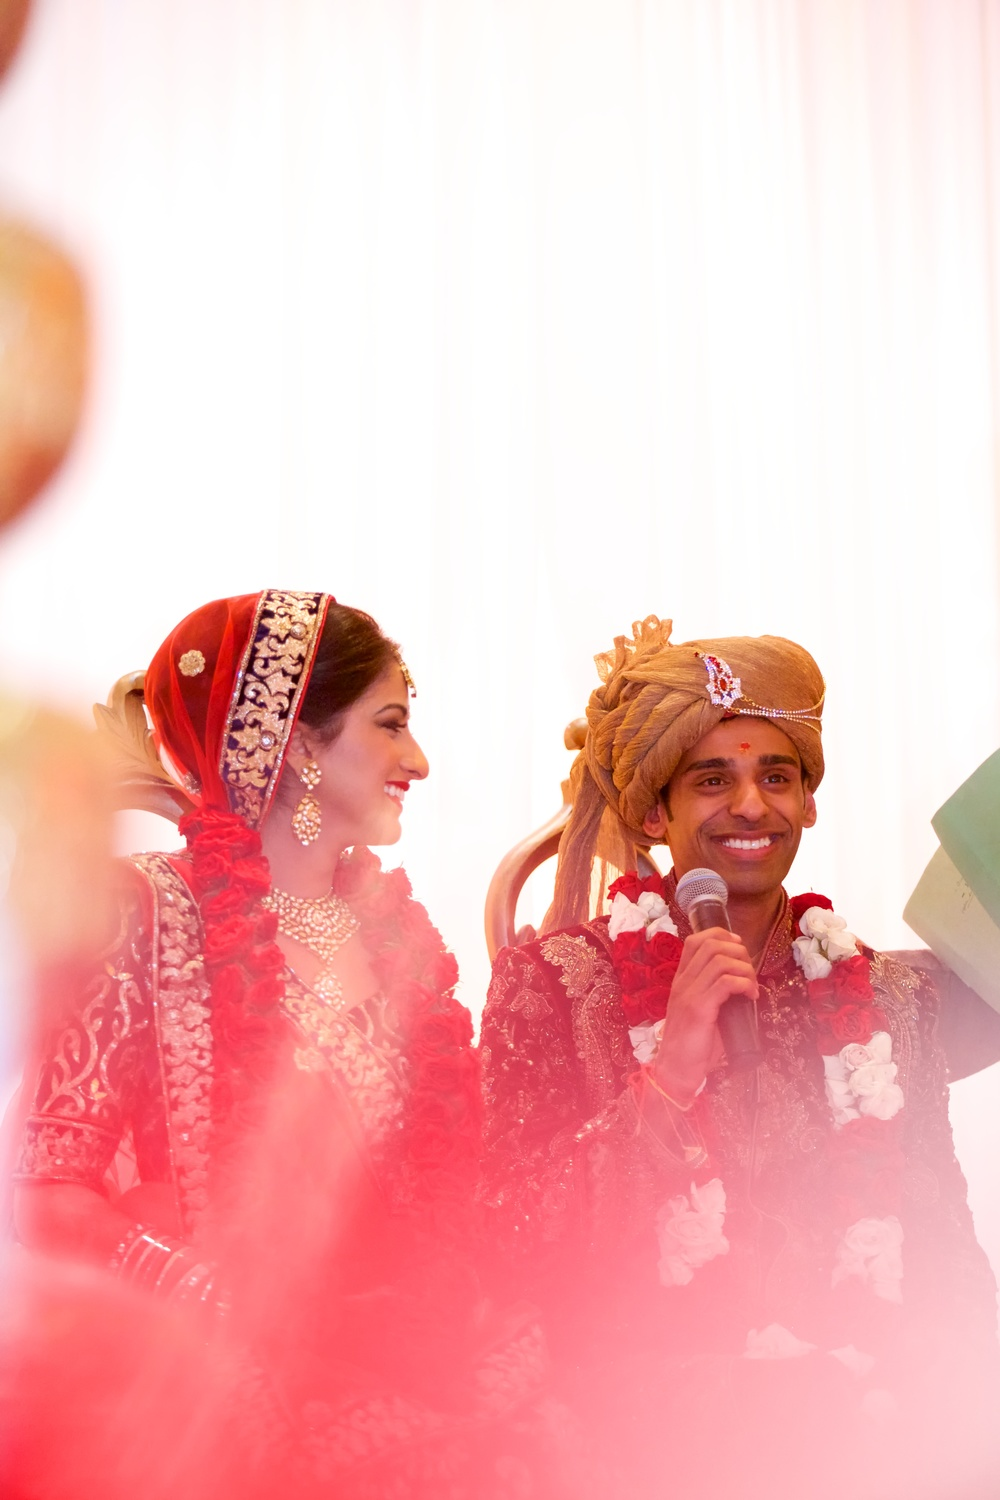 Le Cape Weddings - Indian Wedding - Day 4 - Megan and Karthik Ceremony  43.jpg